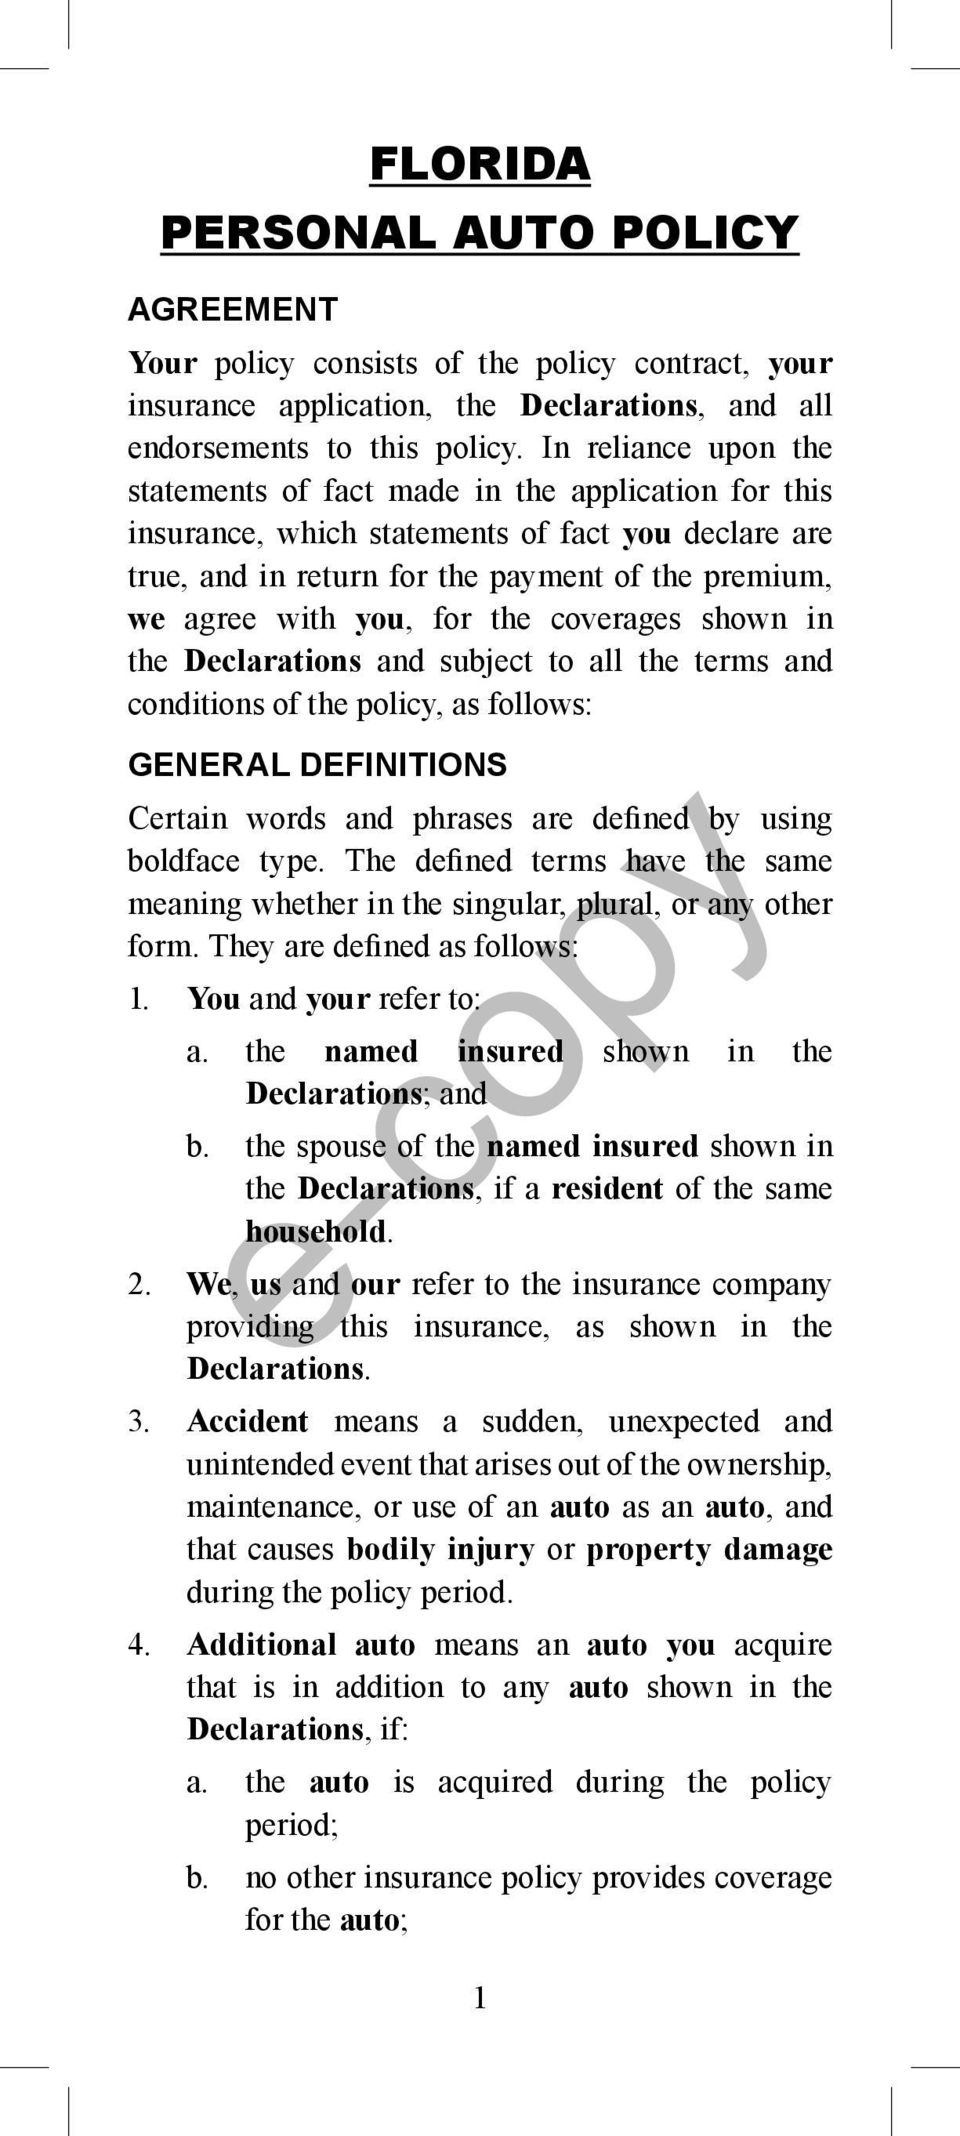 the coverages shown in the Declarations and subject to all the terms and conditions of the policy, as follows: GENERAL DEFINITIONS Certain words and phrases are defined by using boldface type.